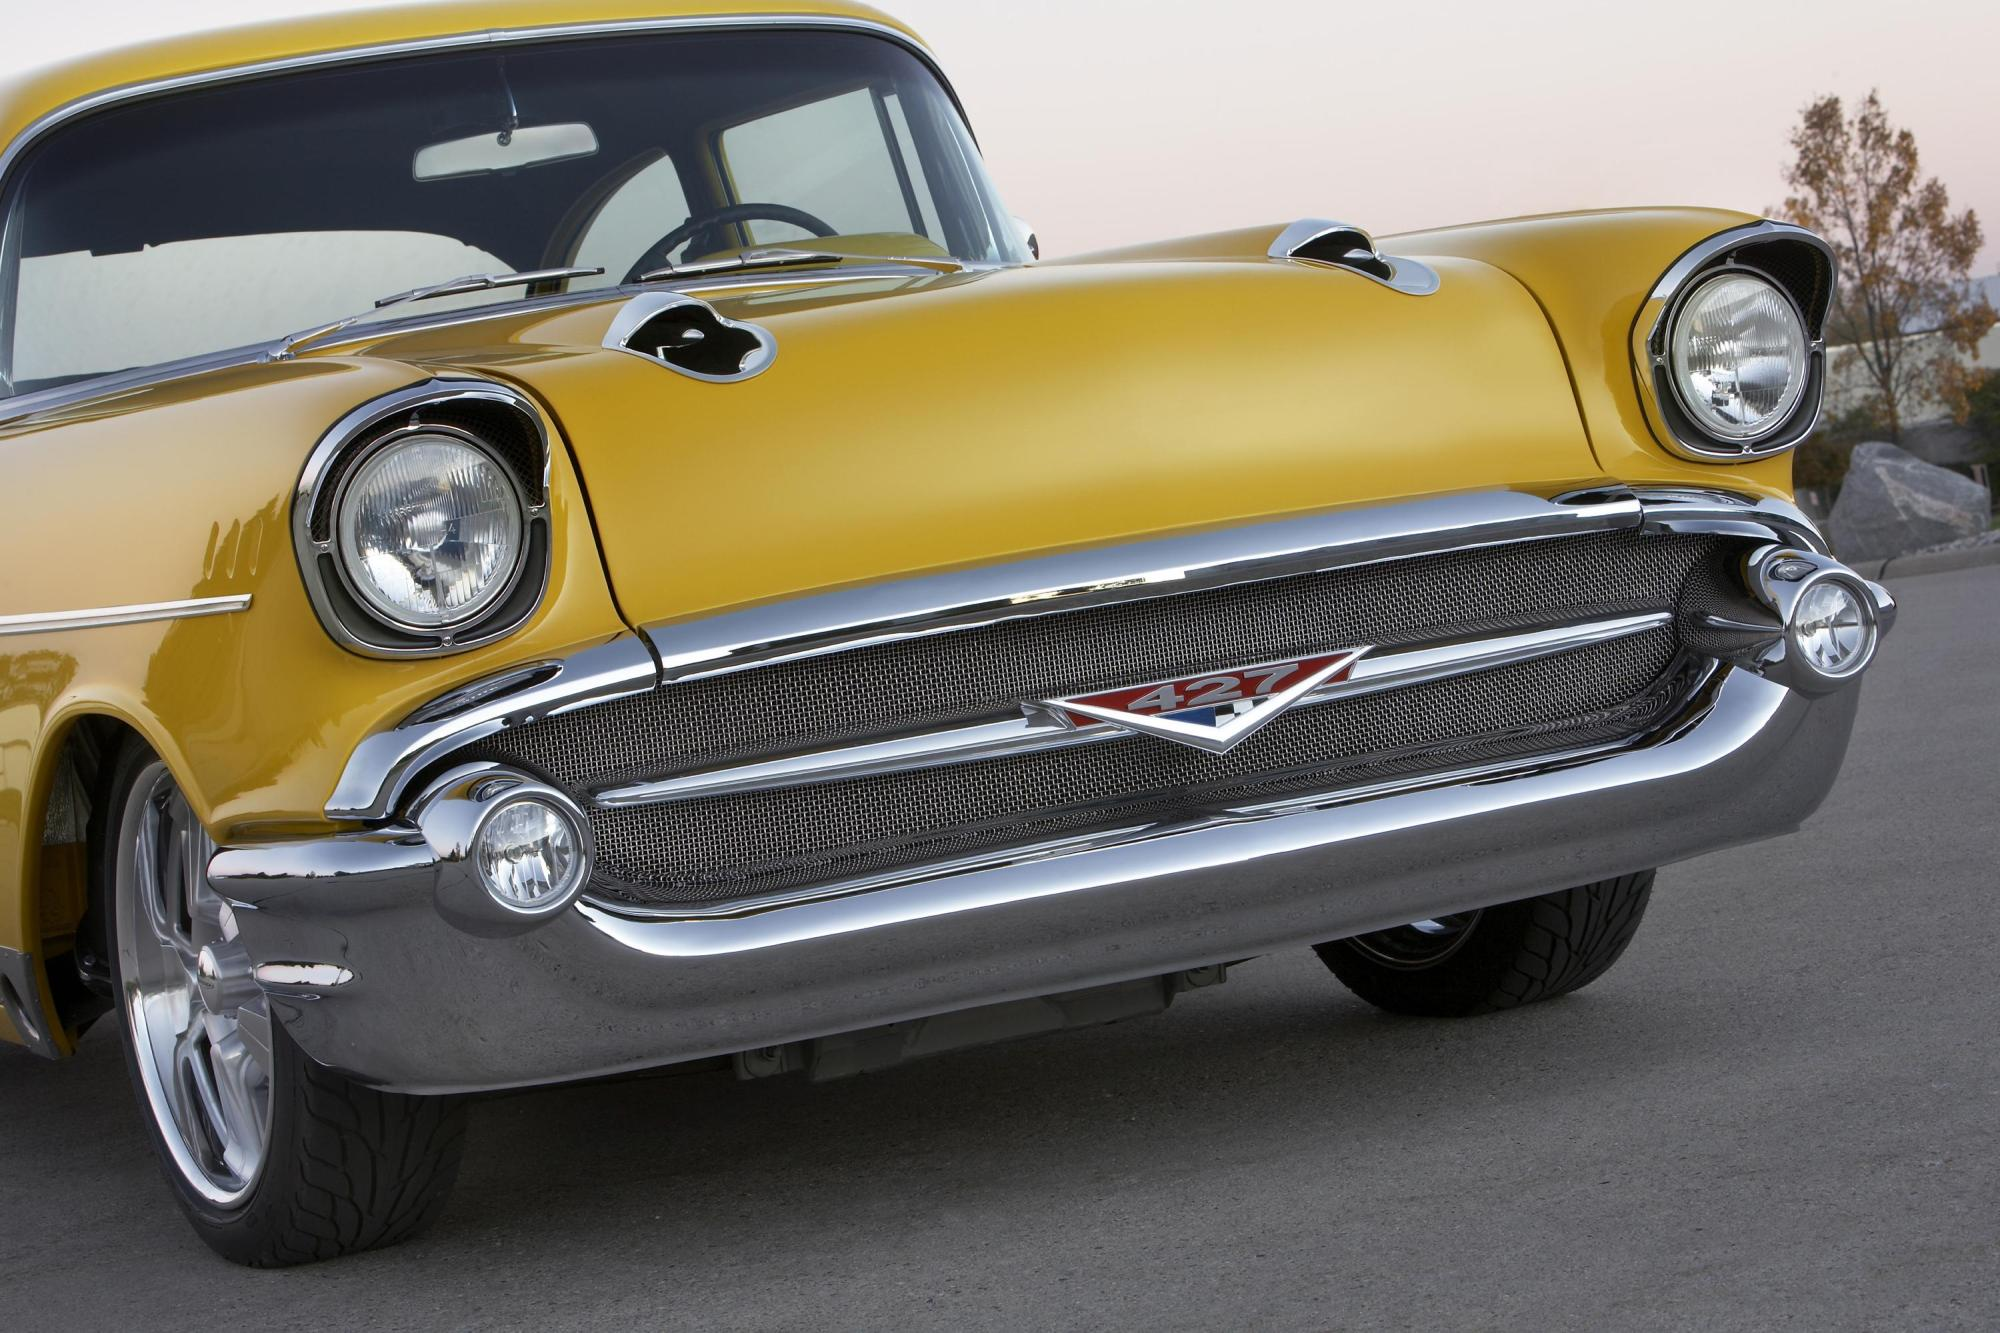 hight resolution of 2007 chevrolet bel air project x top speed